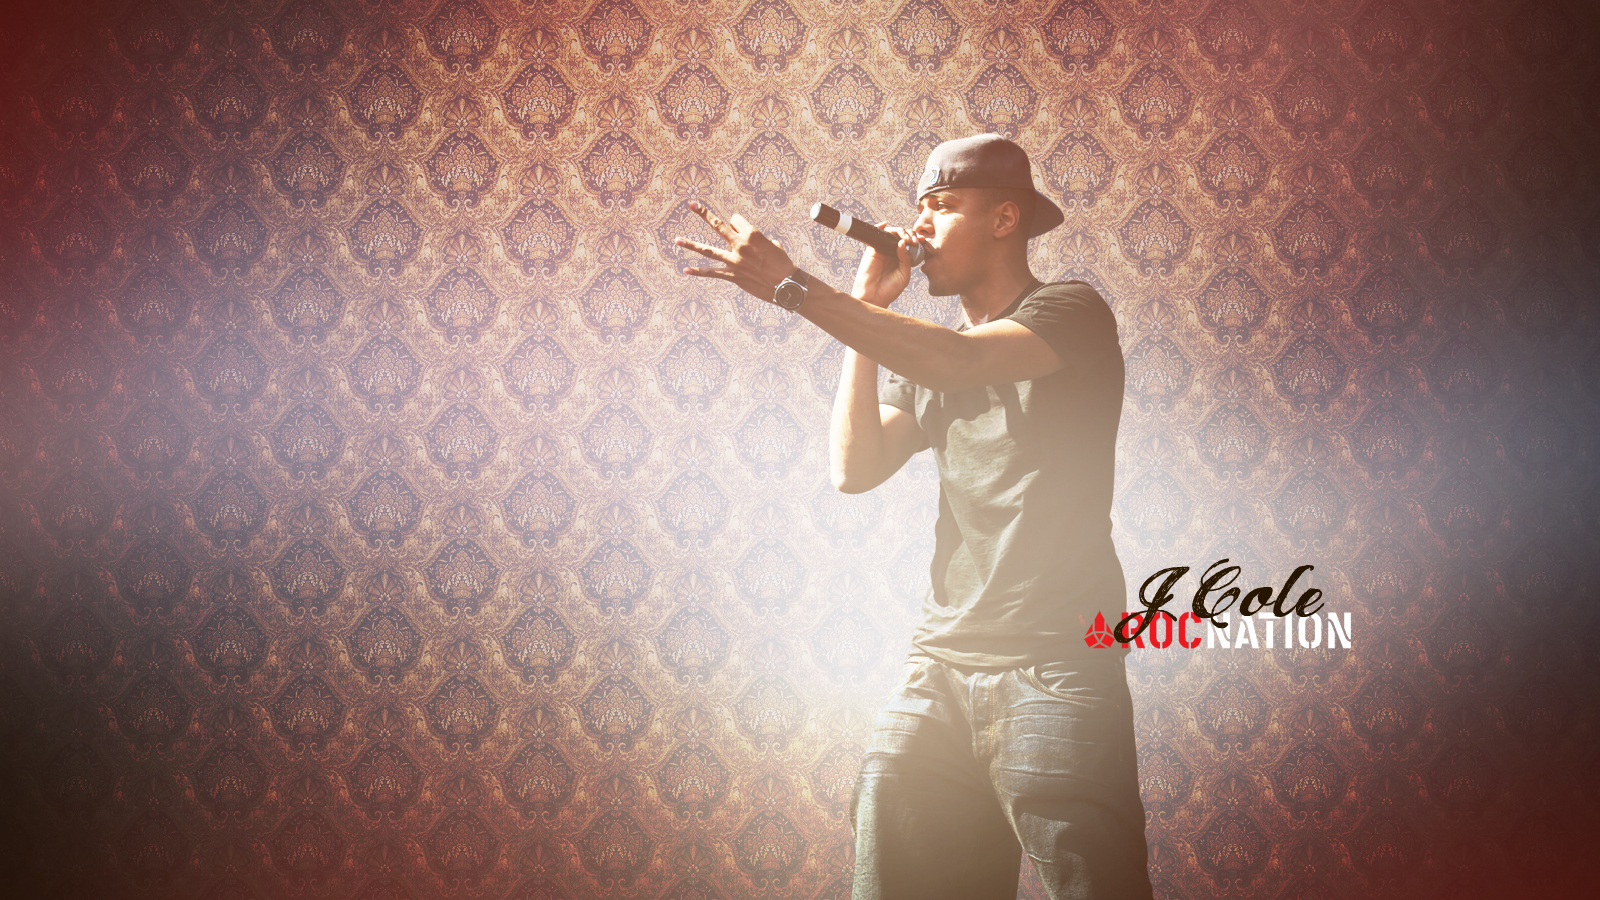 cole wallpaper 1 by hat 94 customization wallpaper people males 1600x900